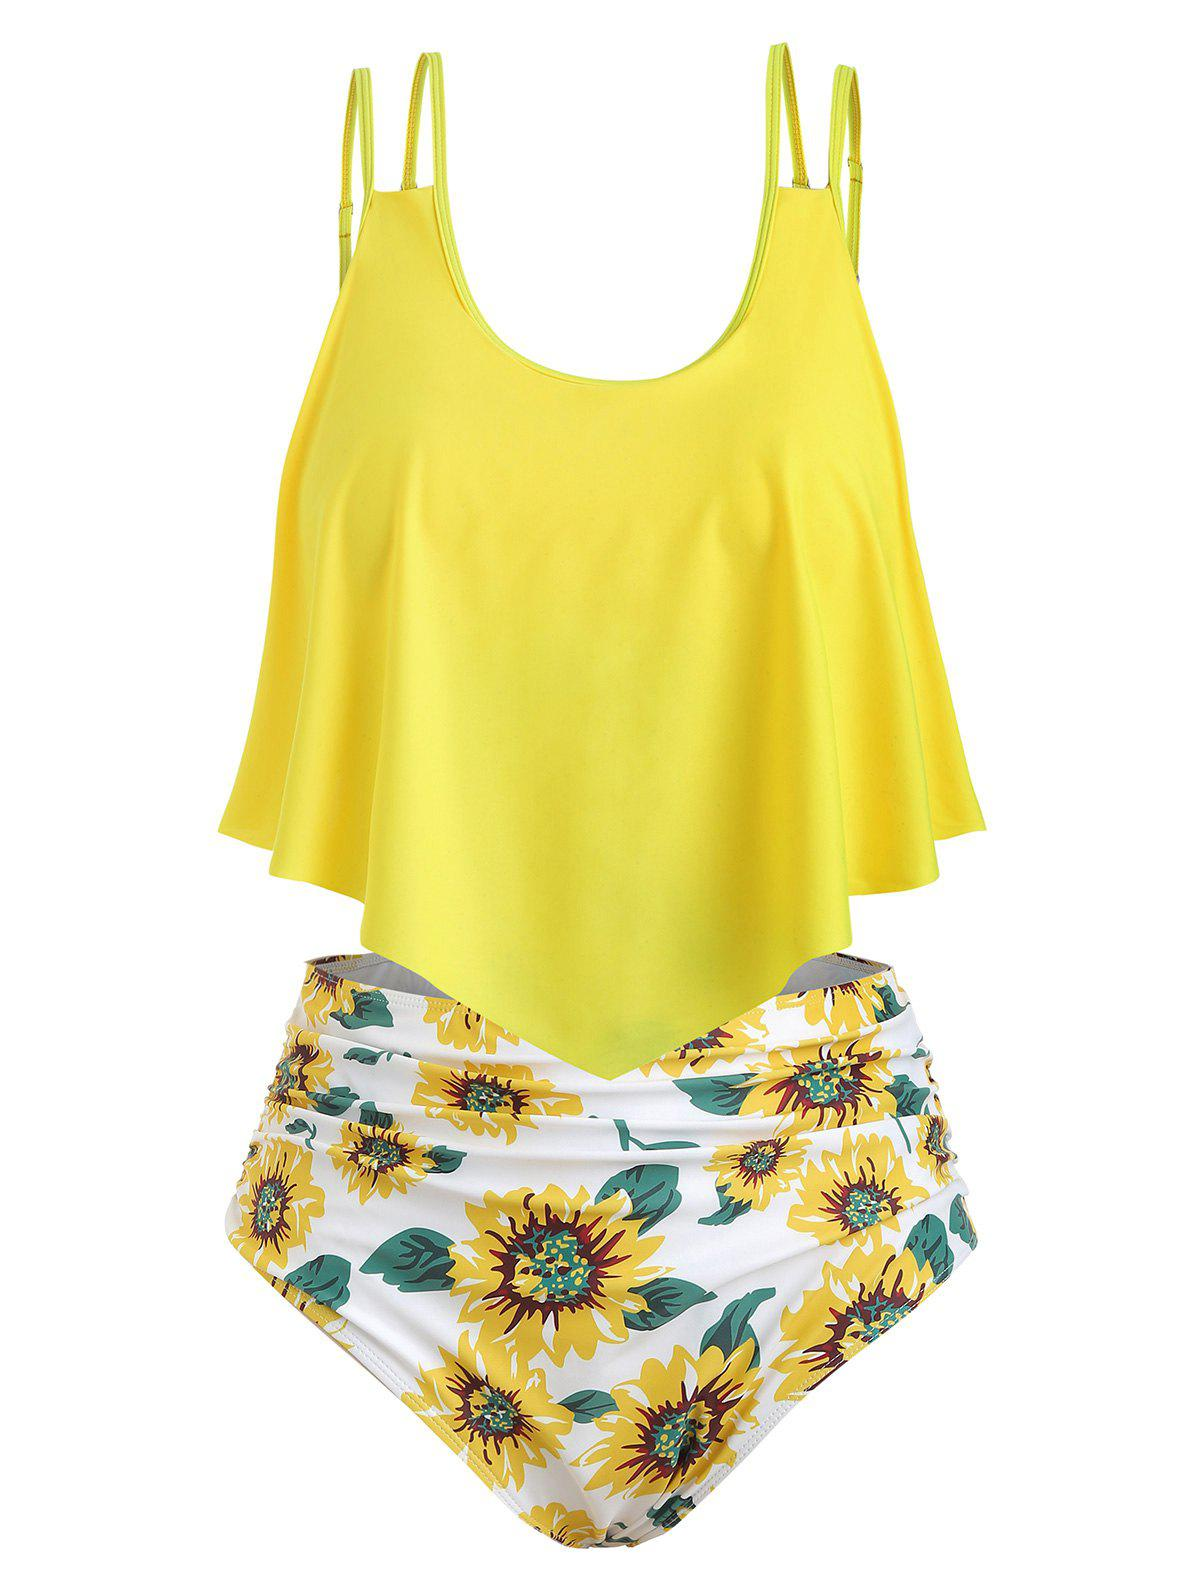 5e24037b1d2 28% OFF  Contrast Overlay Sunflower Plus Size Tankini Set